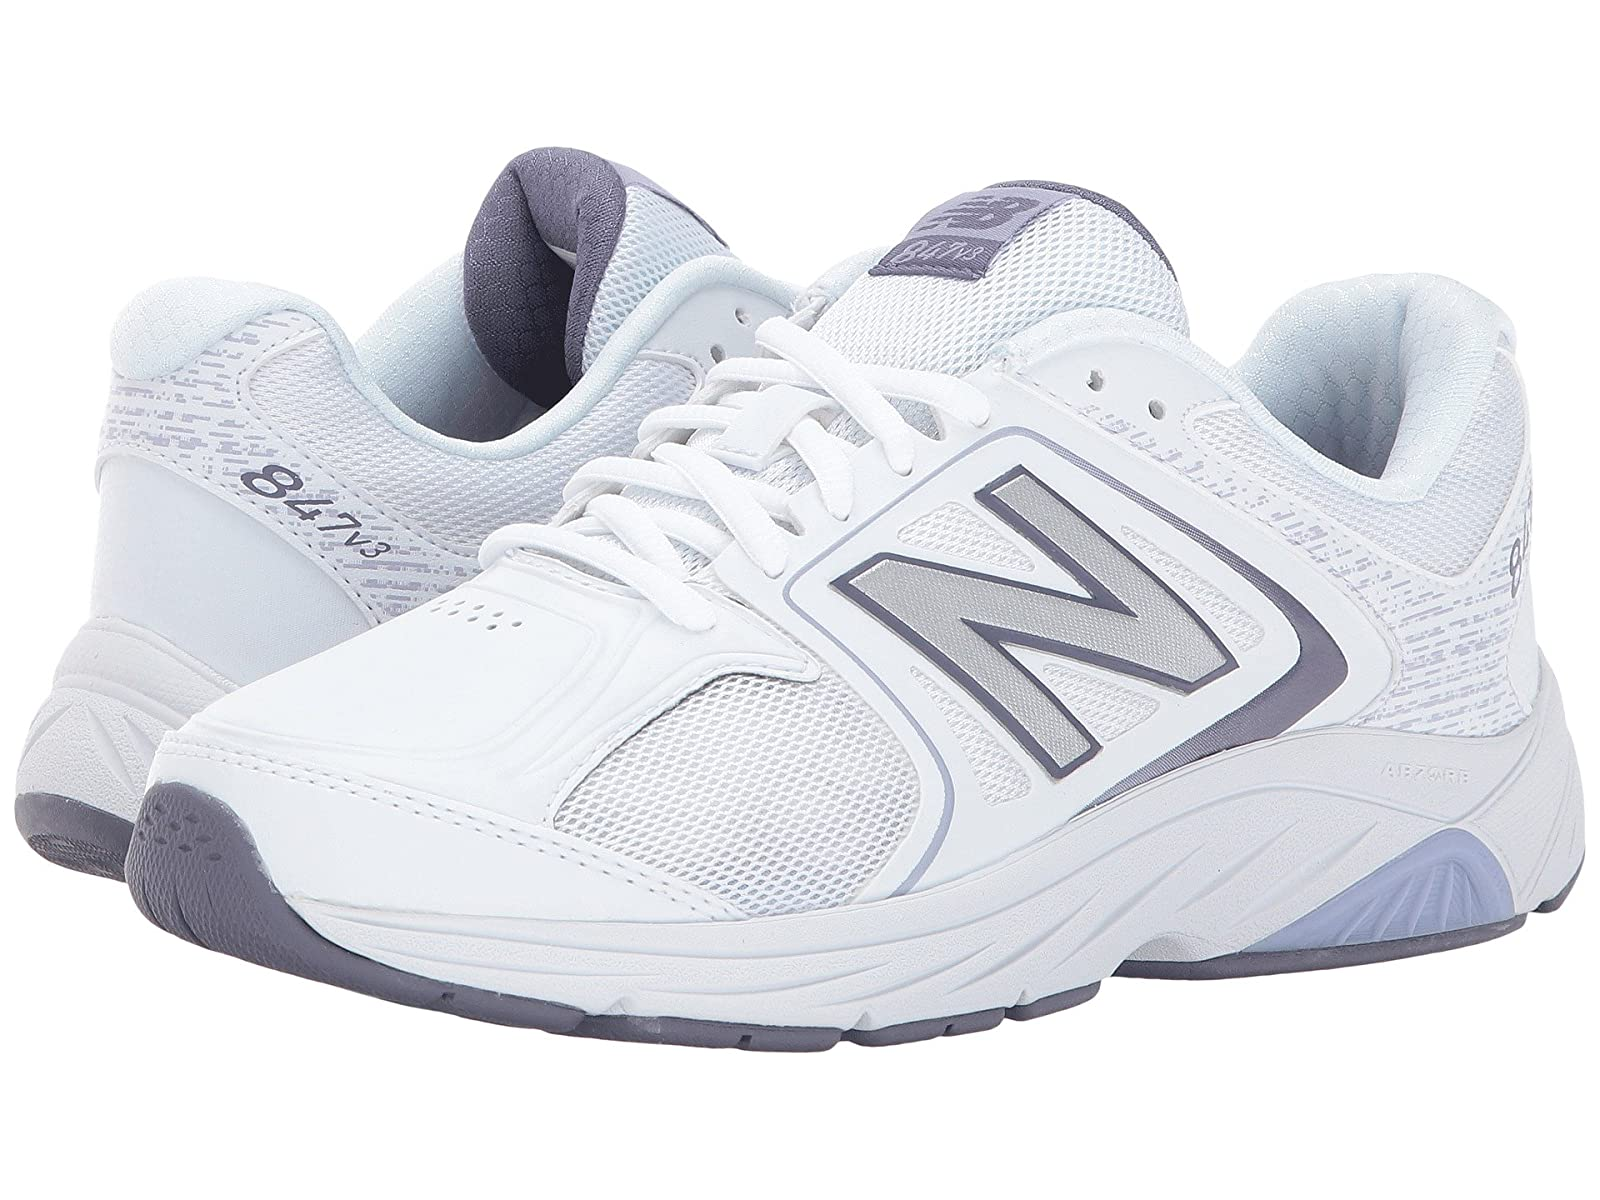 New Balance WW847v3Atmospheric grades have affordable shoes